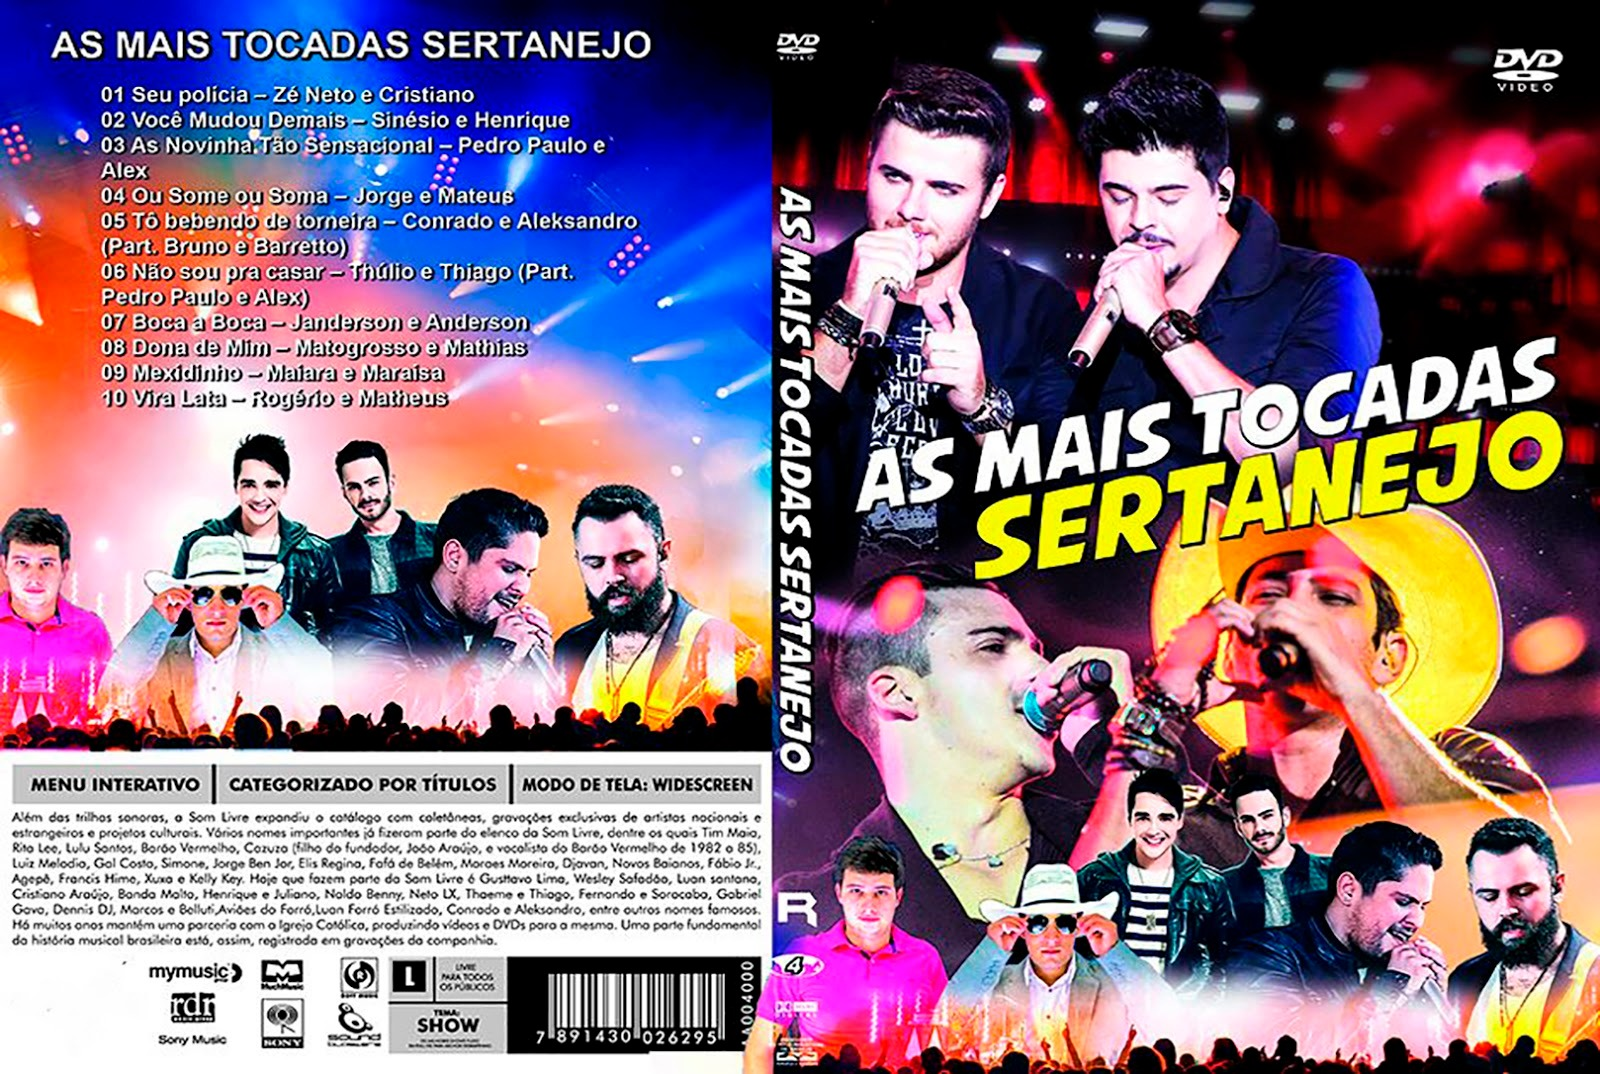 Baixar As Mais Tocadas Sertanejo 2016 Full HD AS 2BMAIS 2BTOCADAS 2BSERTANEJO